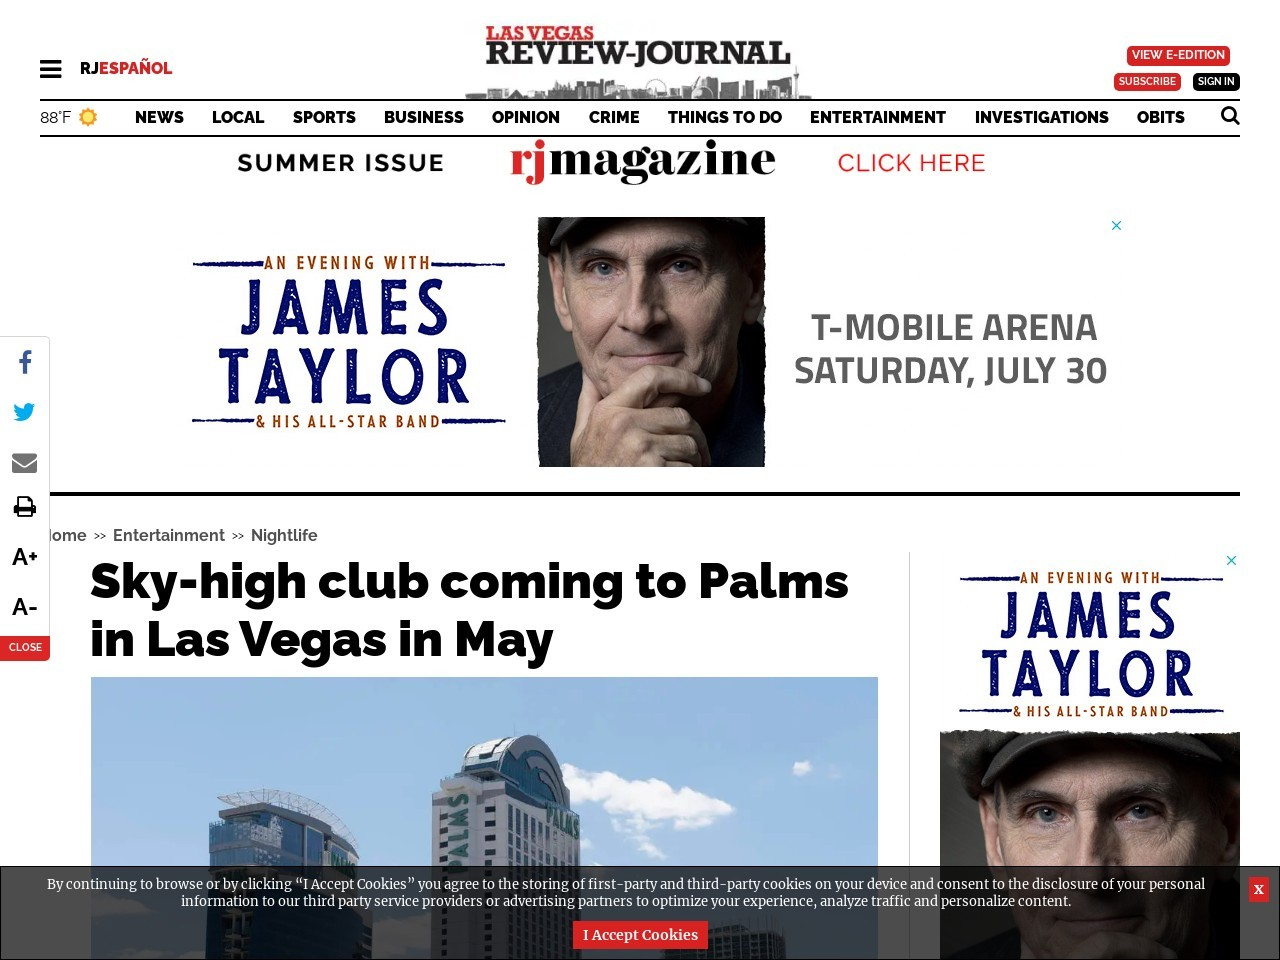 Sky-high club coming to Palms in Las Vegas in May